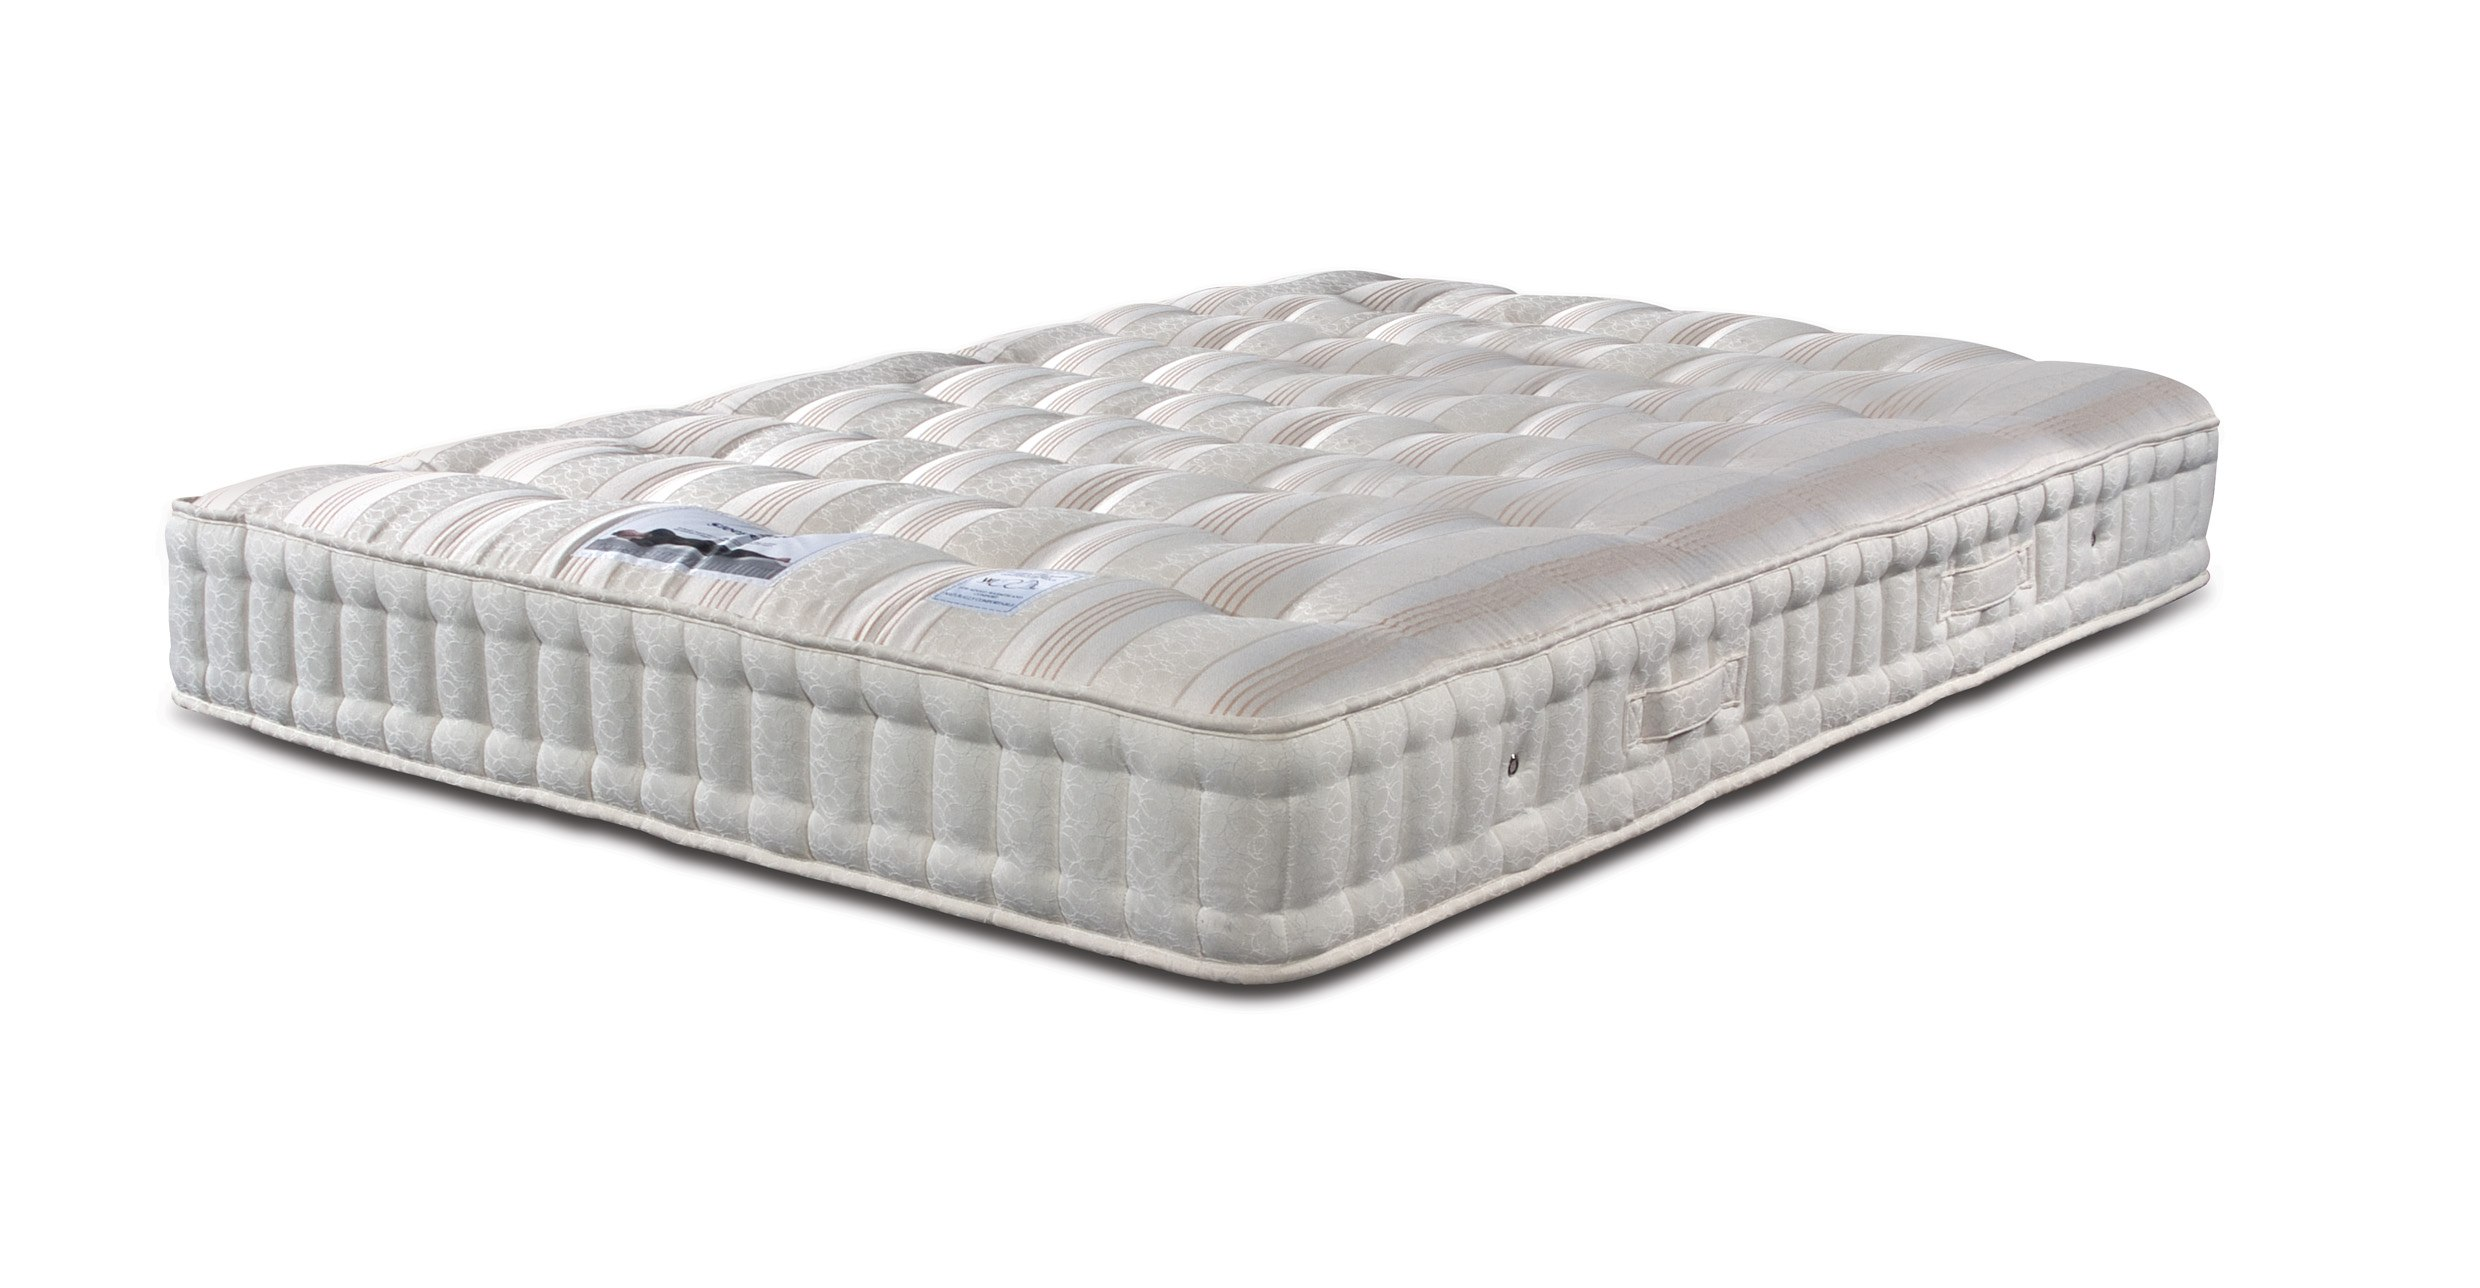 Backcare Extreme 1000 Mattress available from the world of beds, doncaster, south yorkshire